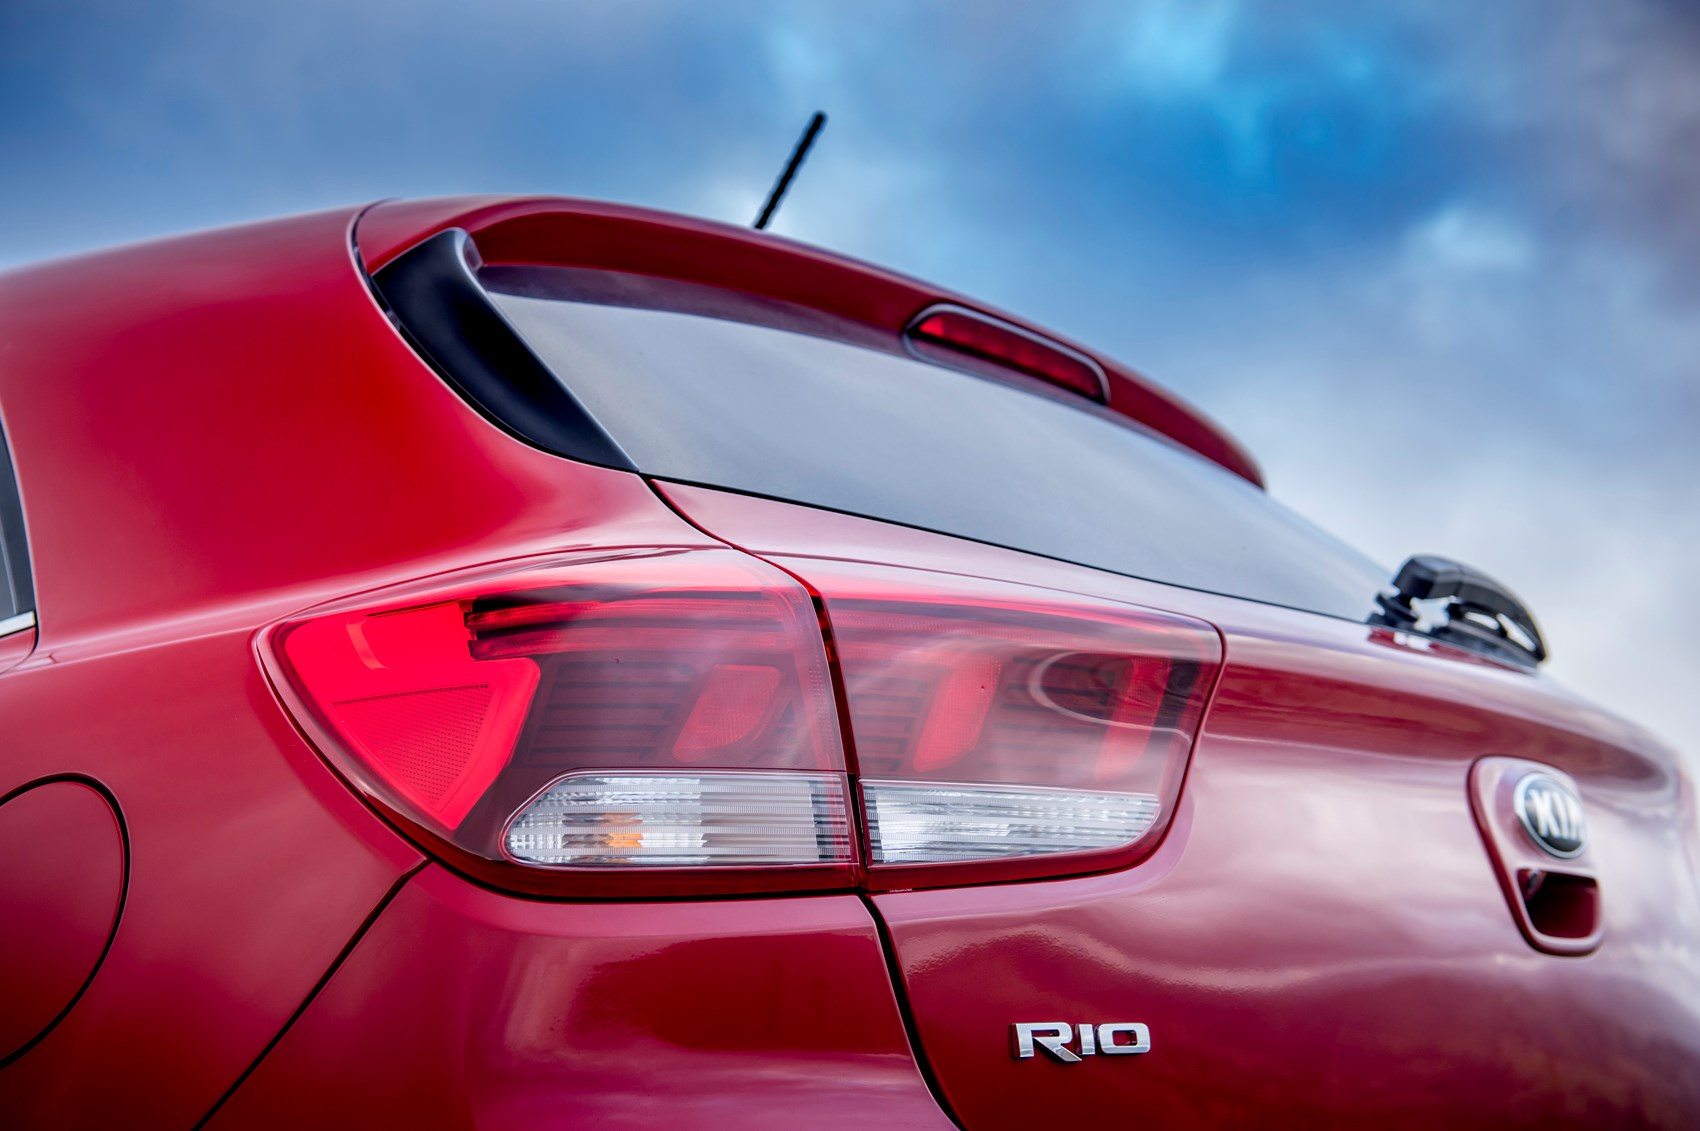 Kia Rio Hatchback 2017 Features Equipment And Accessories Driving Lights Exterior Detail